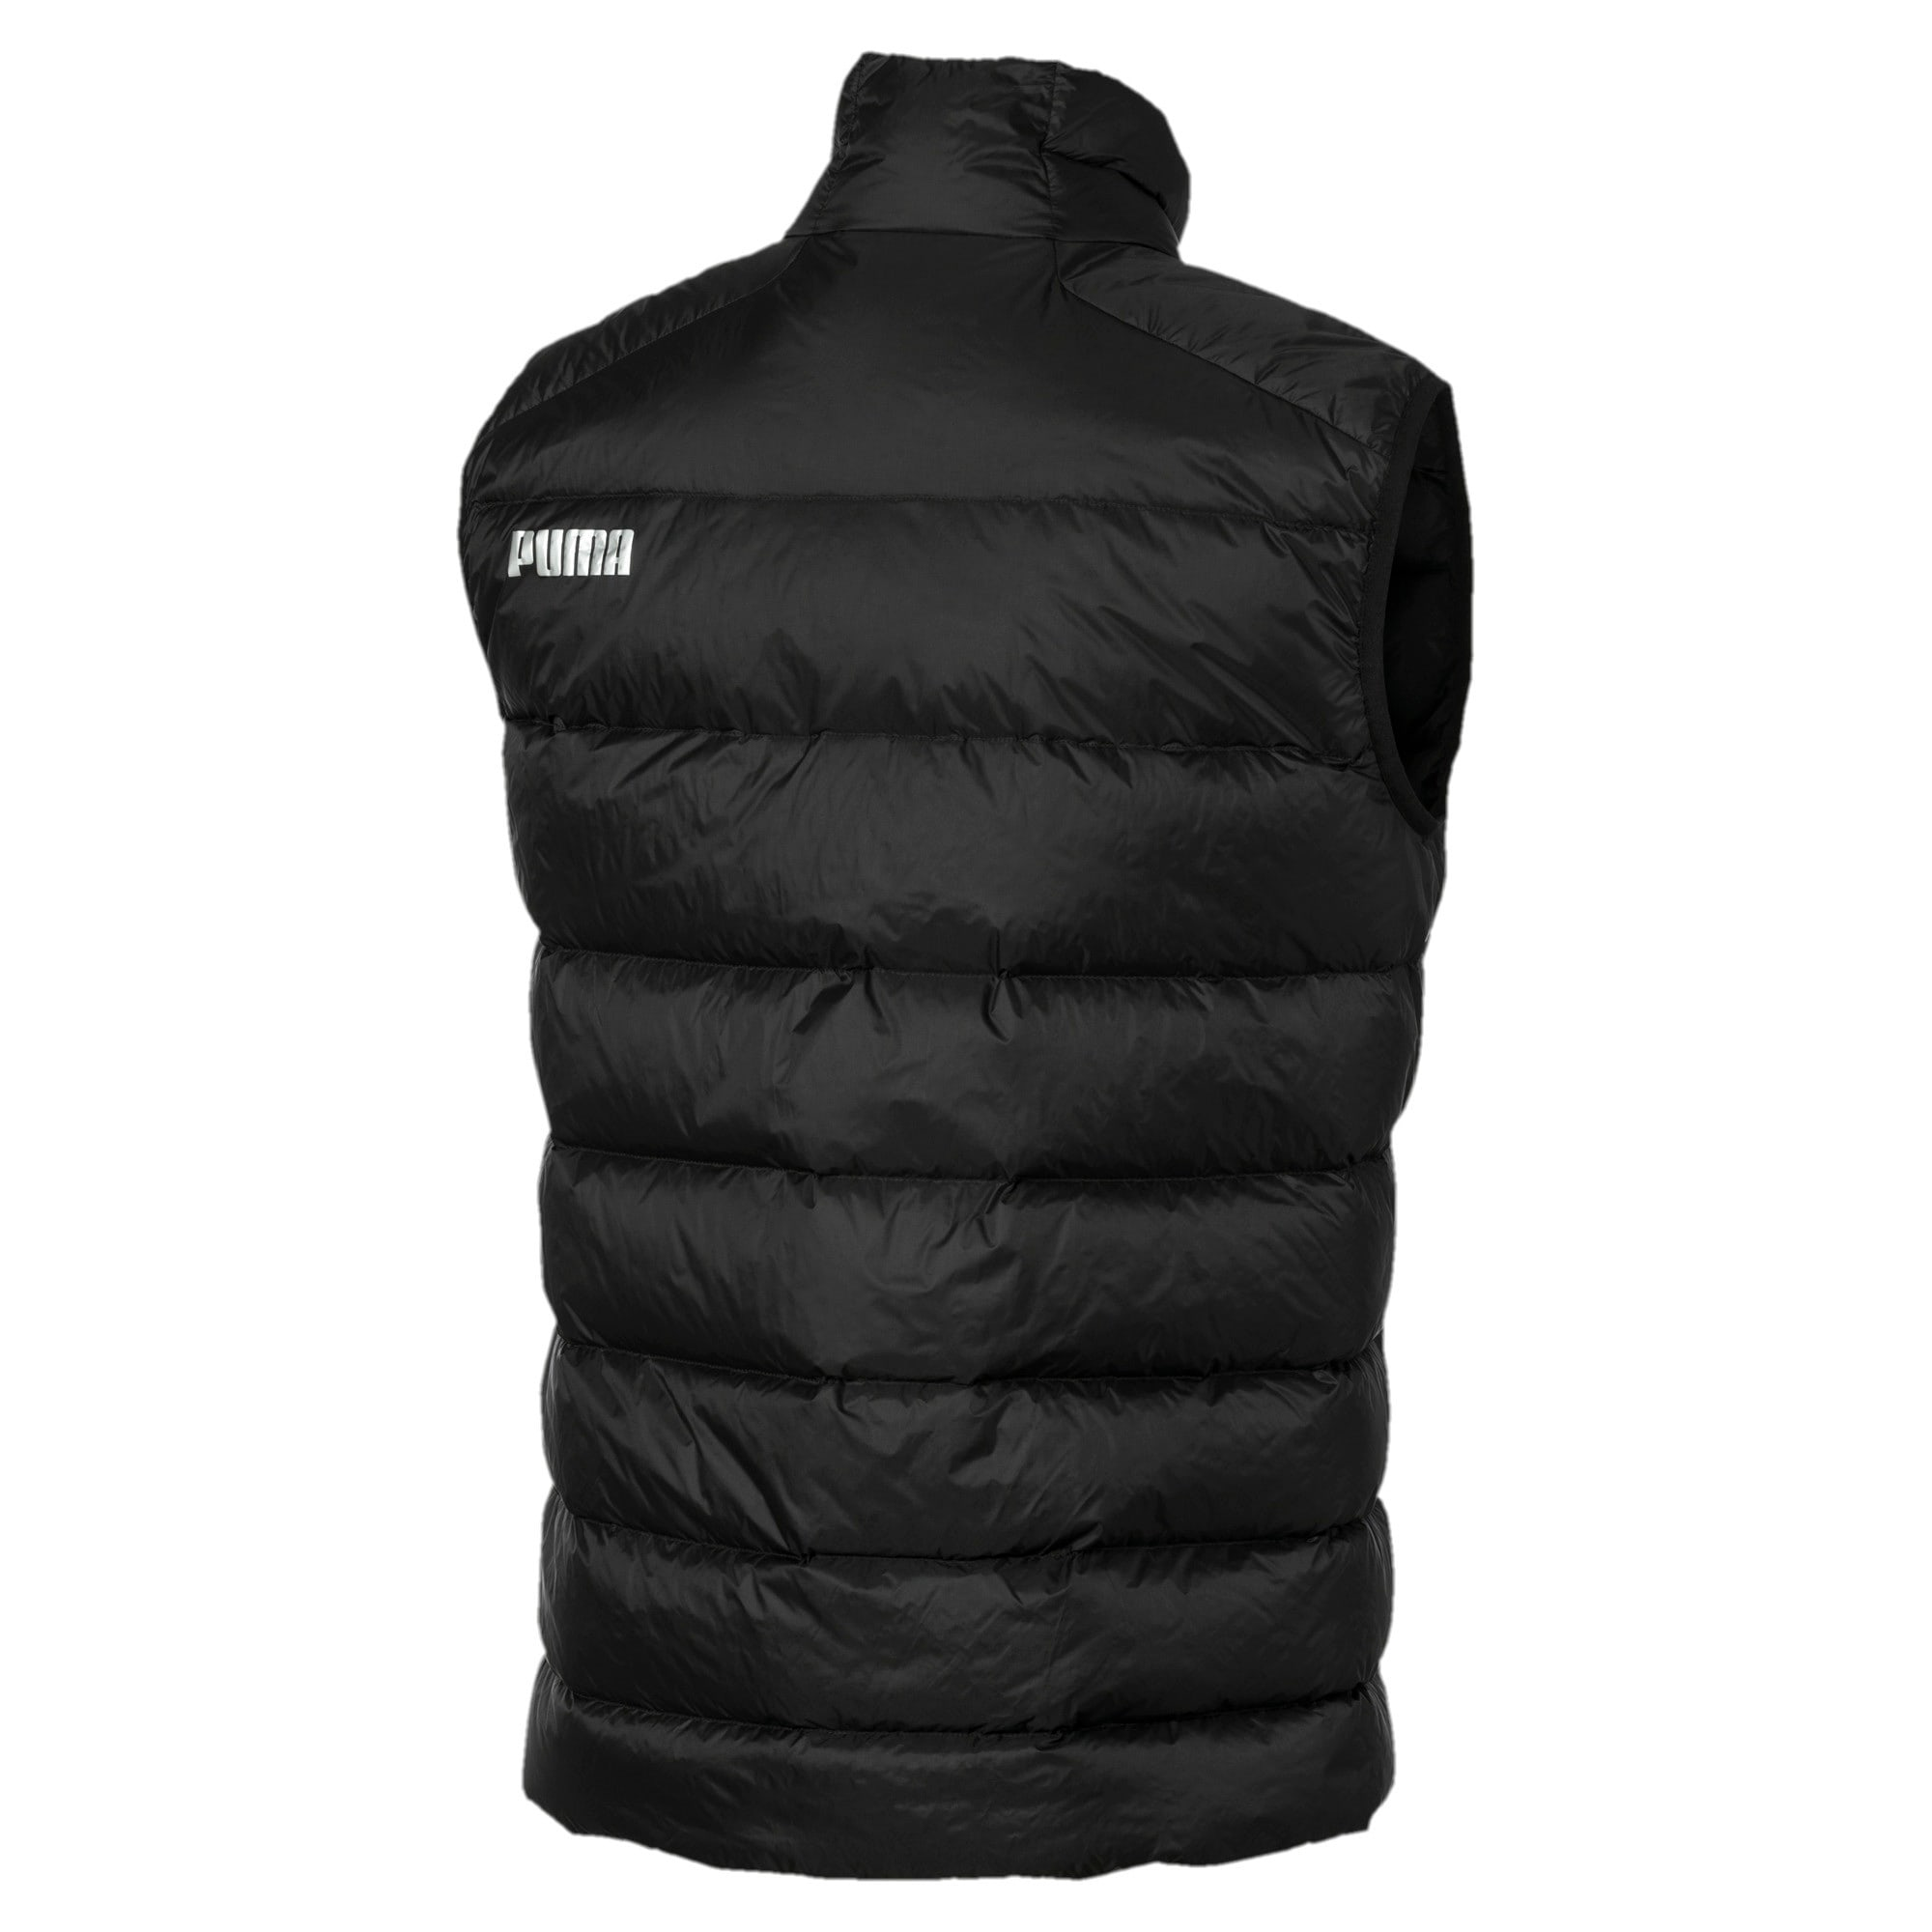 Thumbnail 5 of PWRWarm packLITE 600 Down Men's Vest, Puma Black, medium